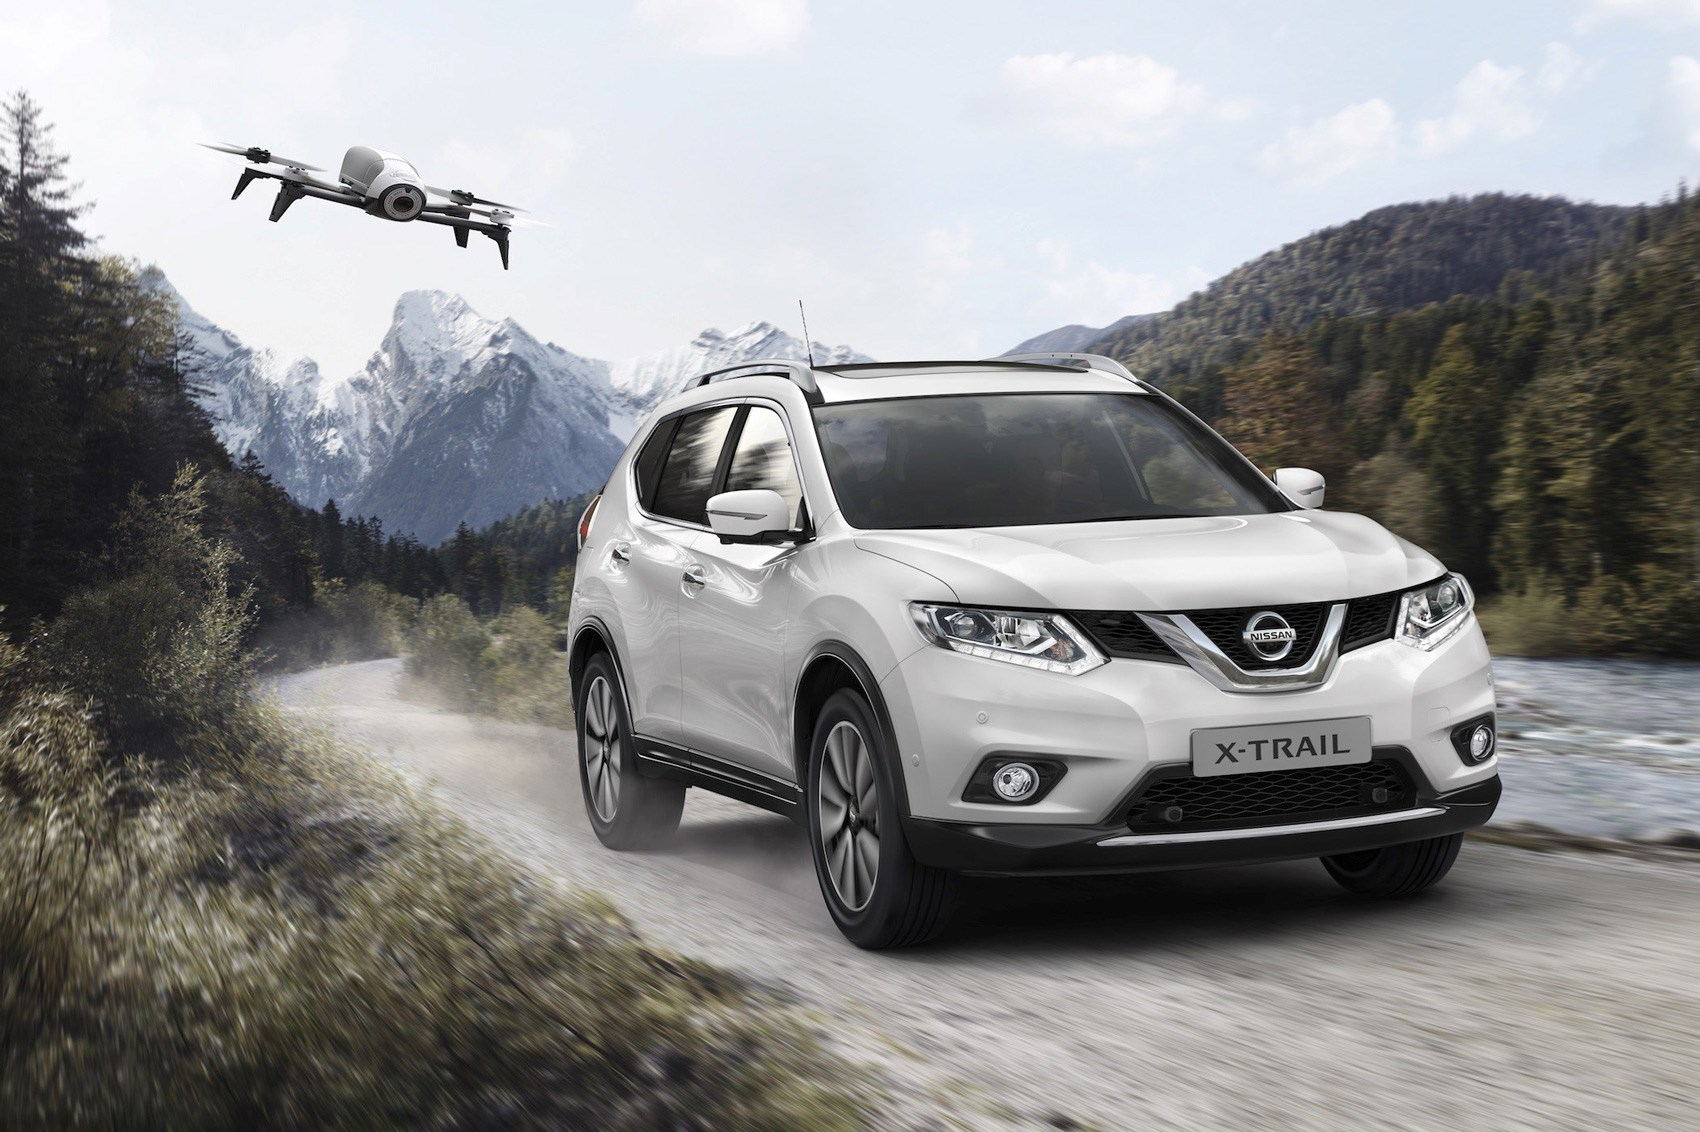 Nissan X-Trail X-Scape Has Drone To Film Your Active